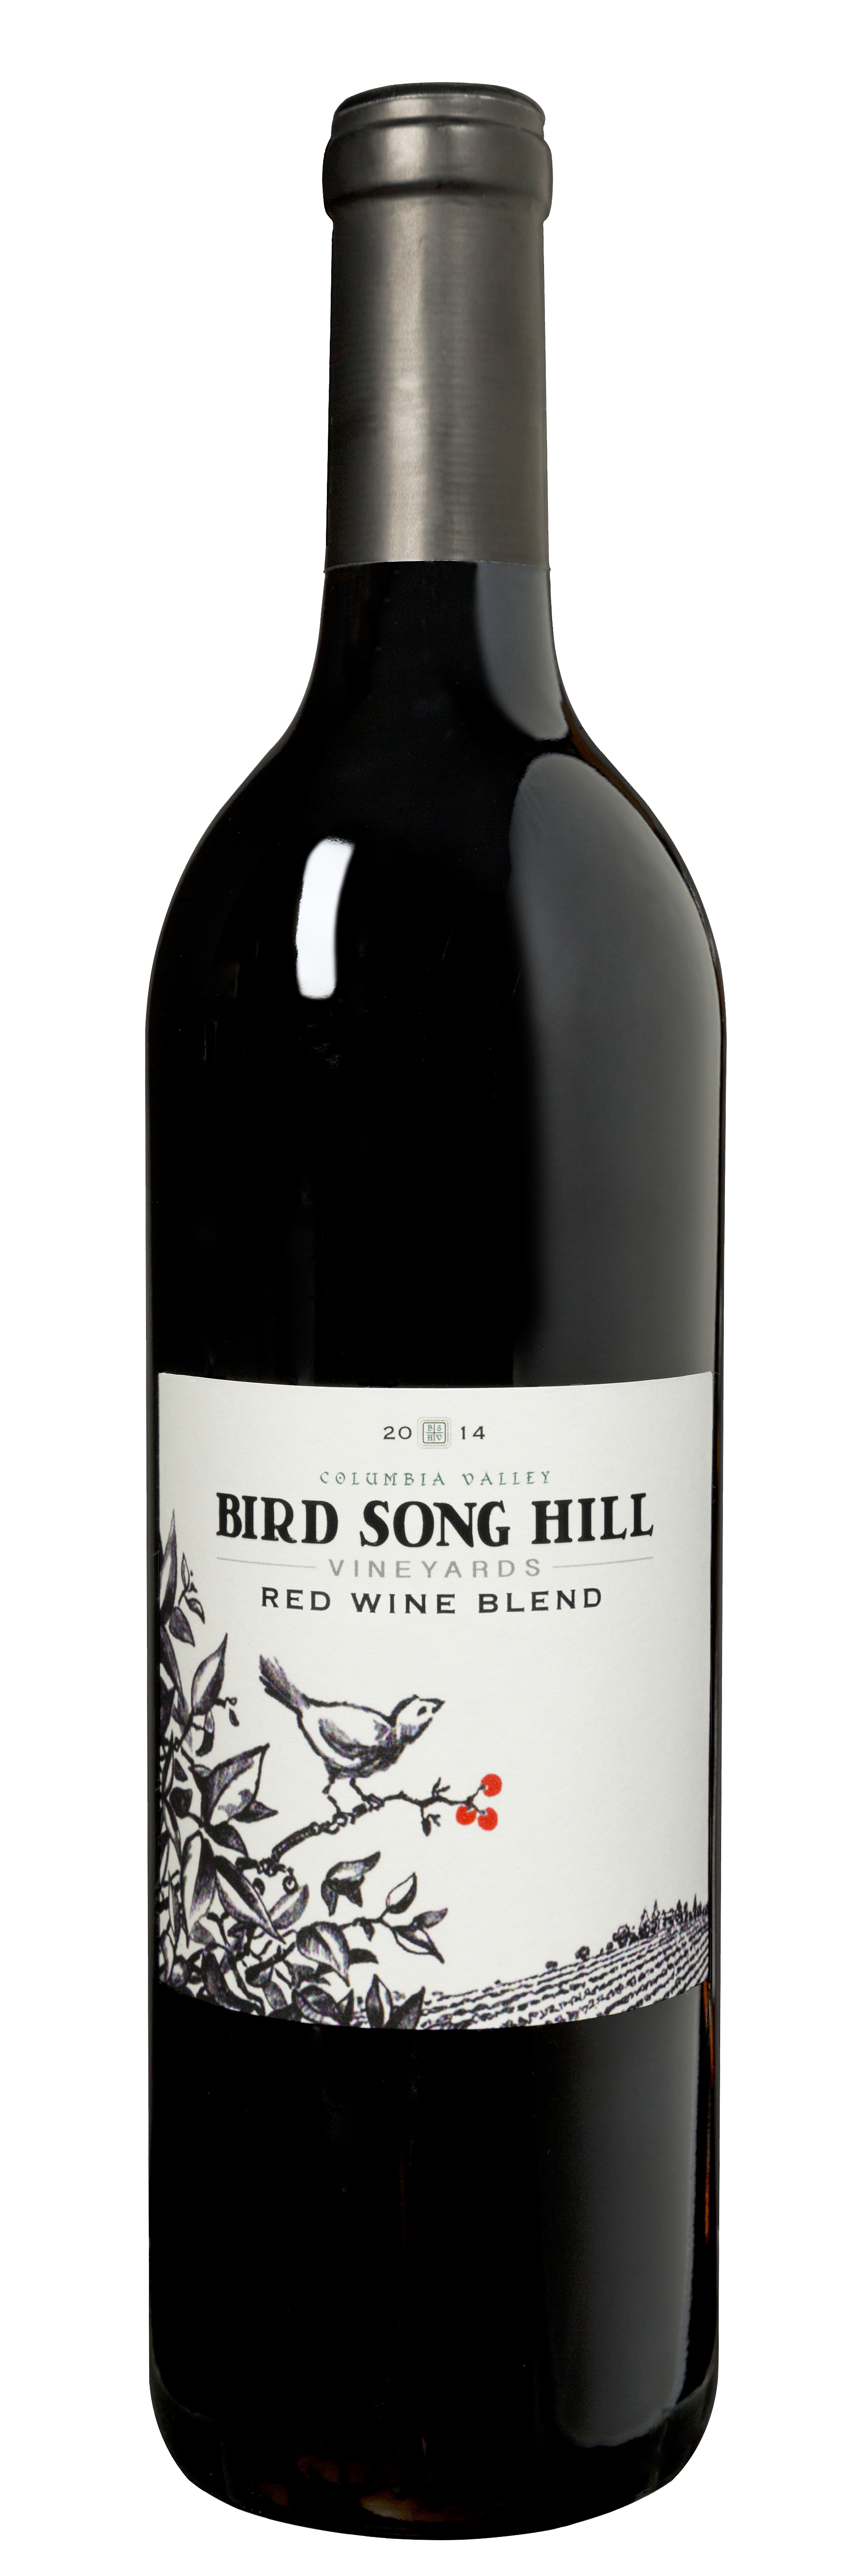 Bird ong Hill Vineyards